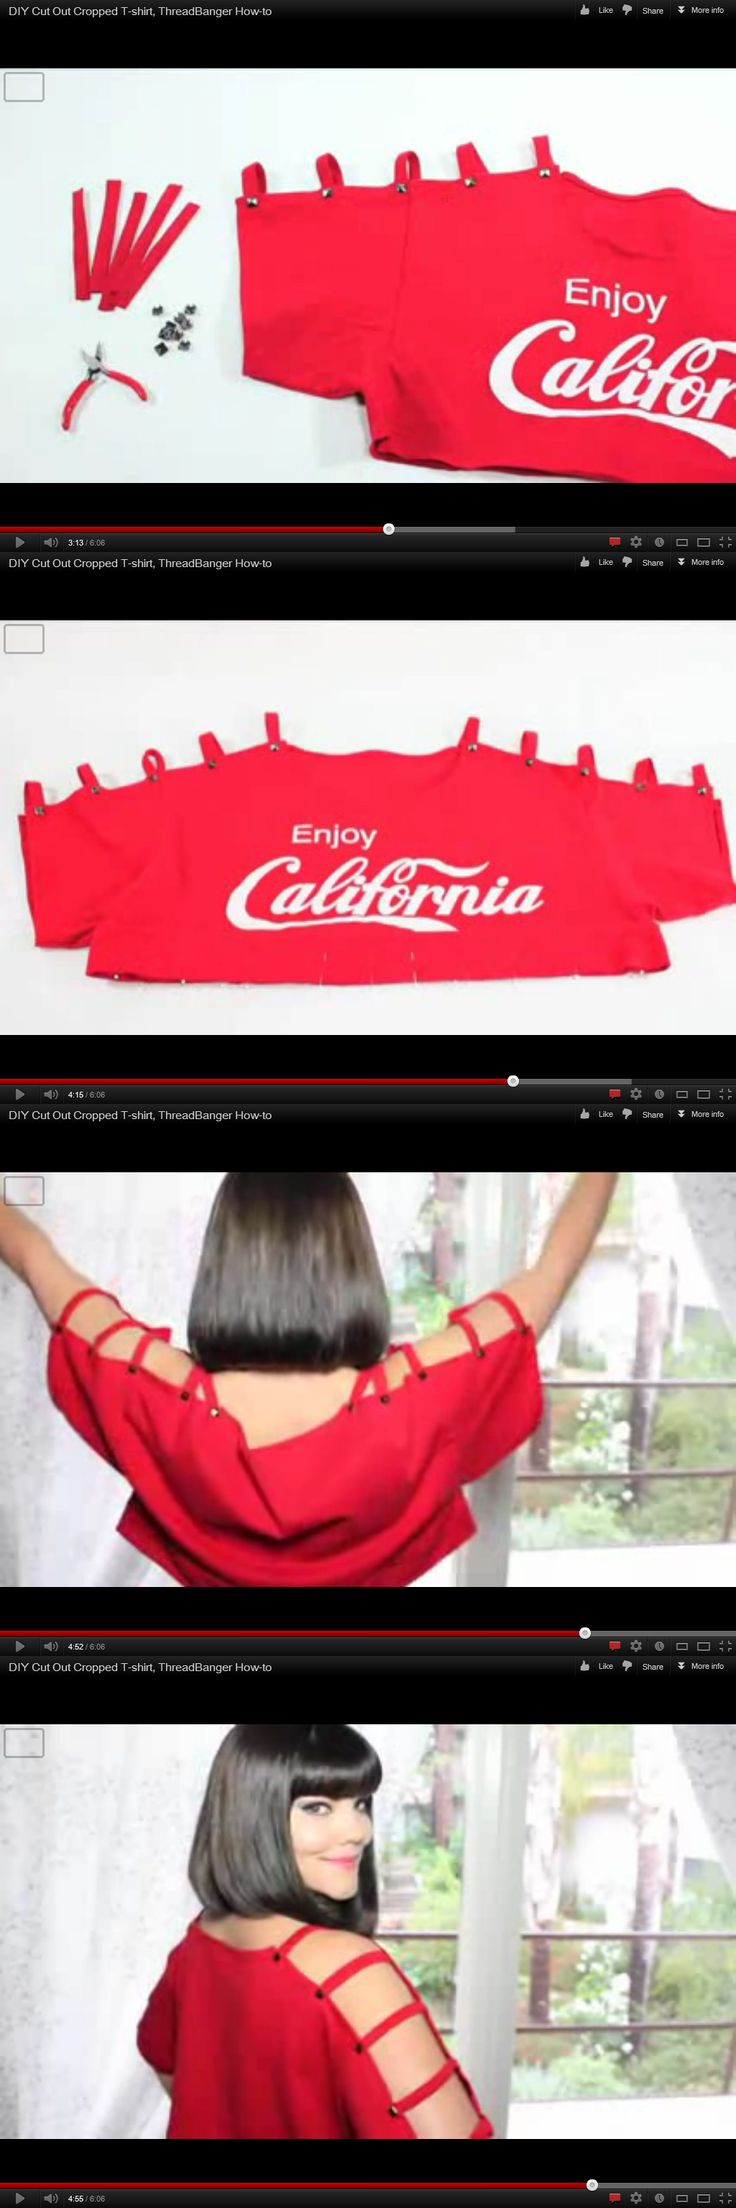 DIY Cut Out Cropped T-shirt, ThreadBanger How-to